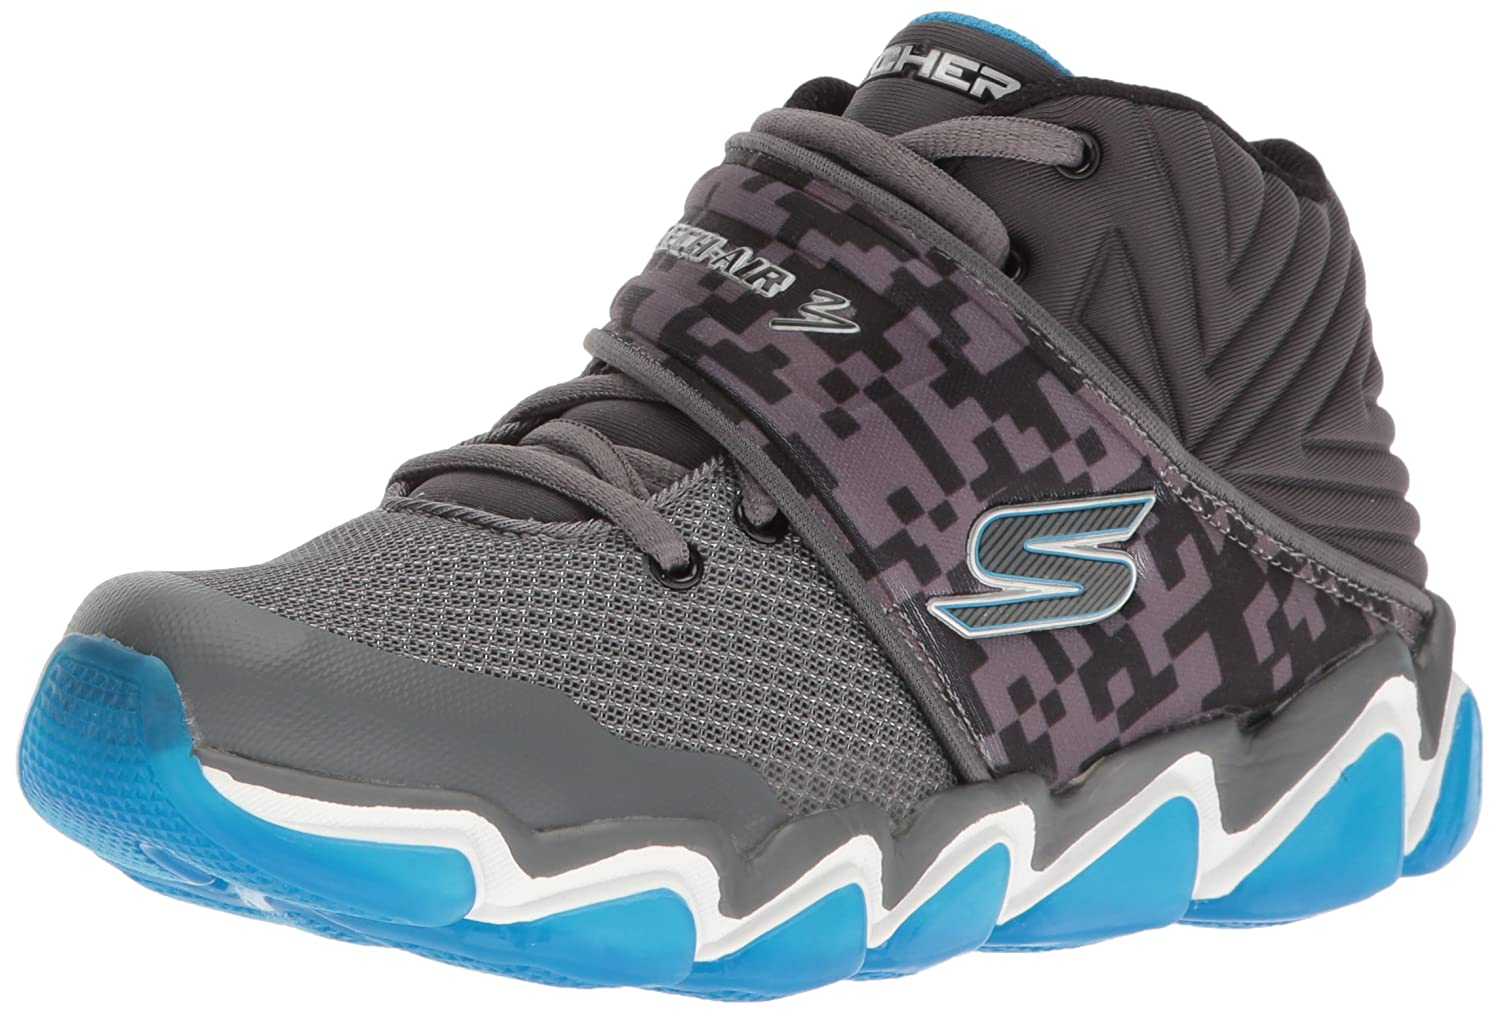 Skechers Kids Boys Skech-Air 3.0 Sneaker